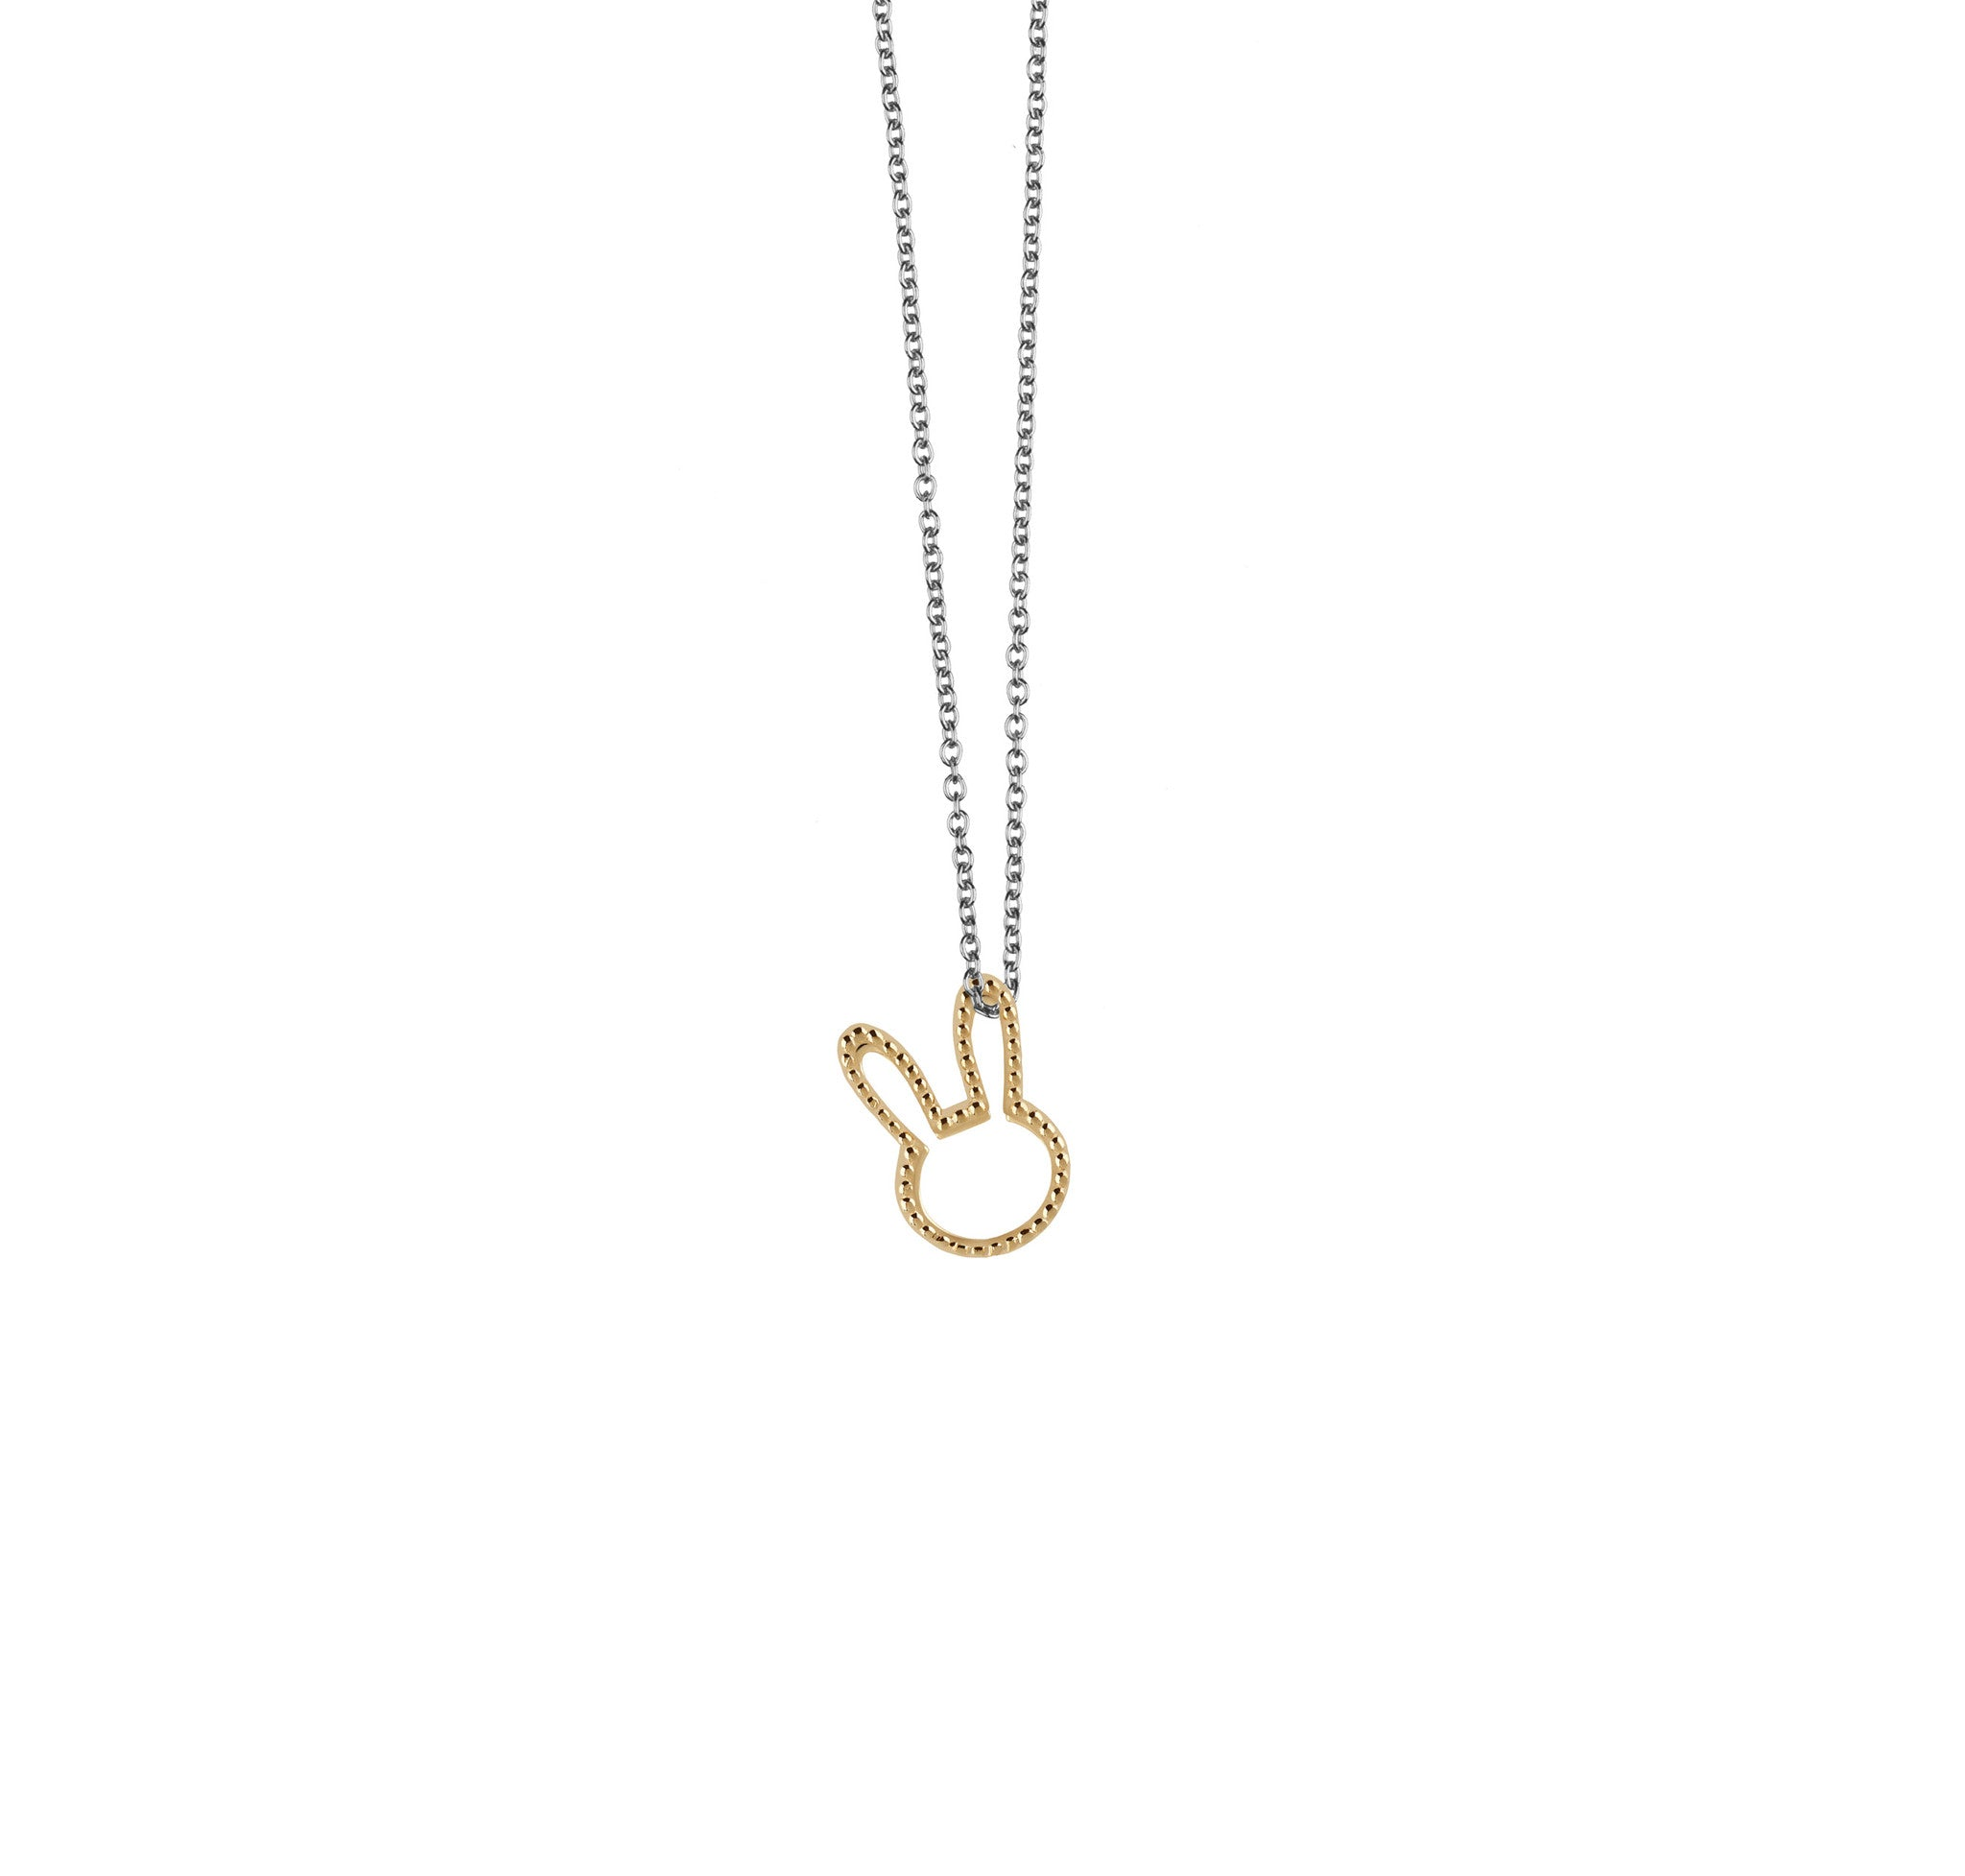 co y dotted necklace mini products heart little chain darling on pendant